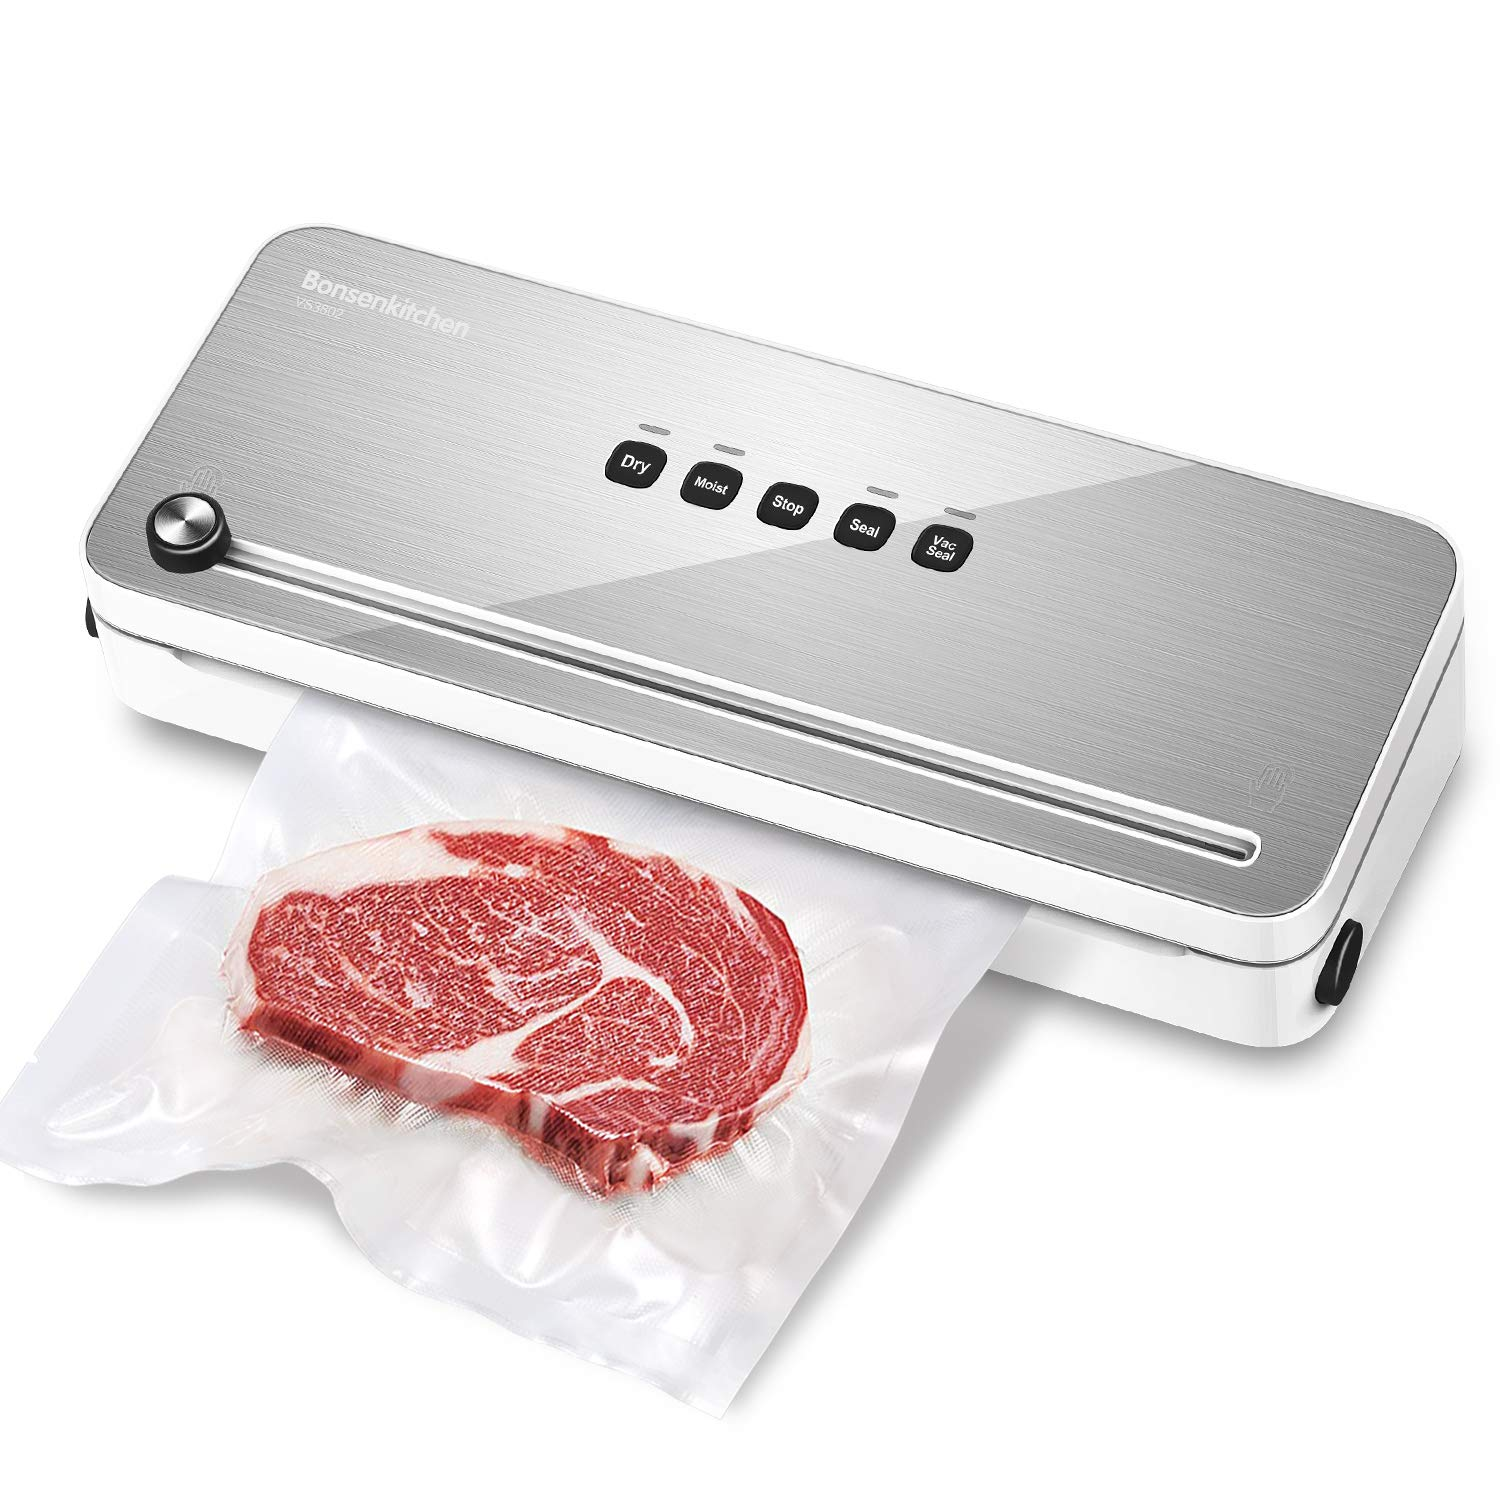 Bonsenkitchen Food Vacuum Sealer Machine for Dry and Moist Food Saver (White) by Bonsenkitchen